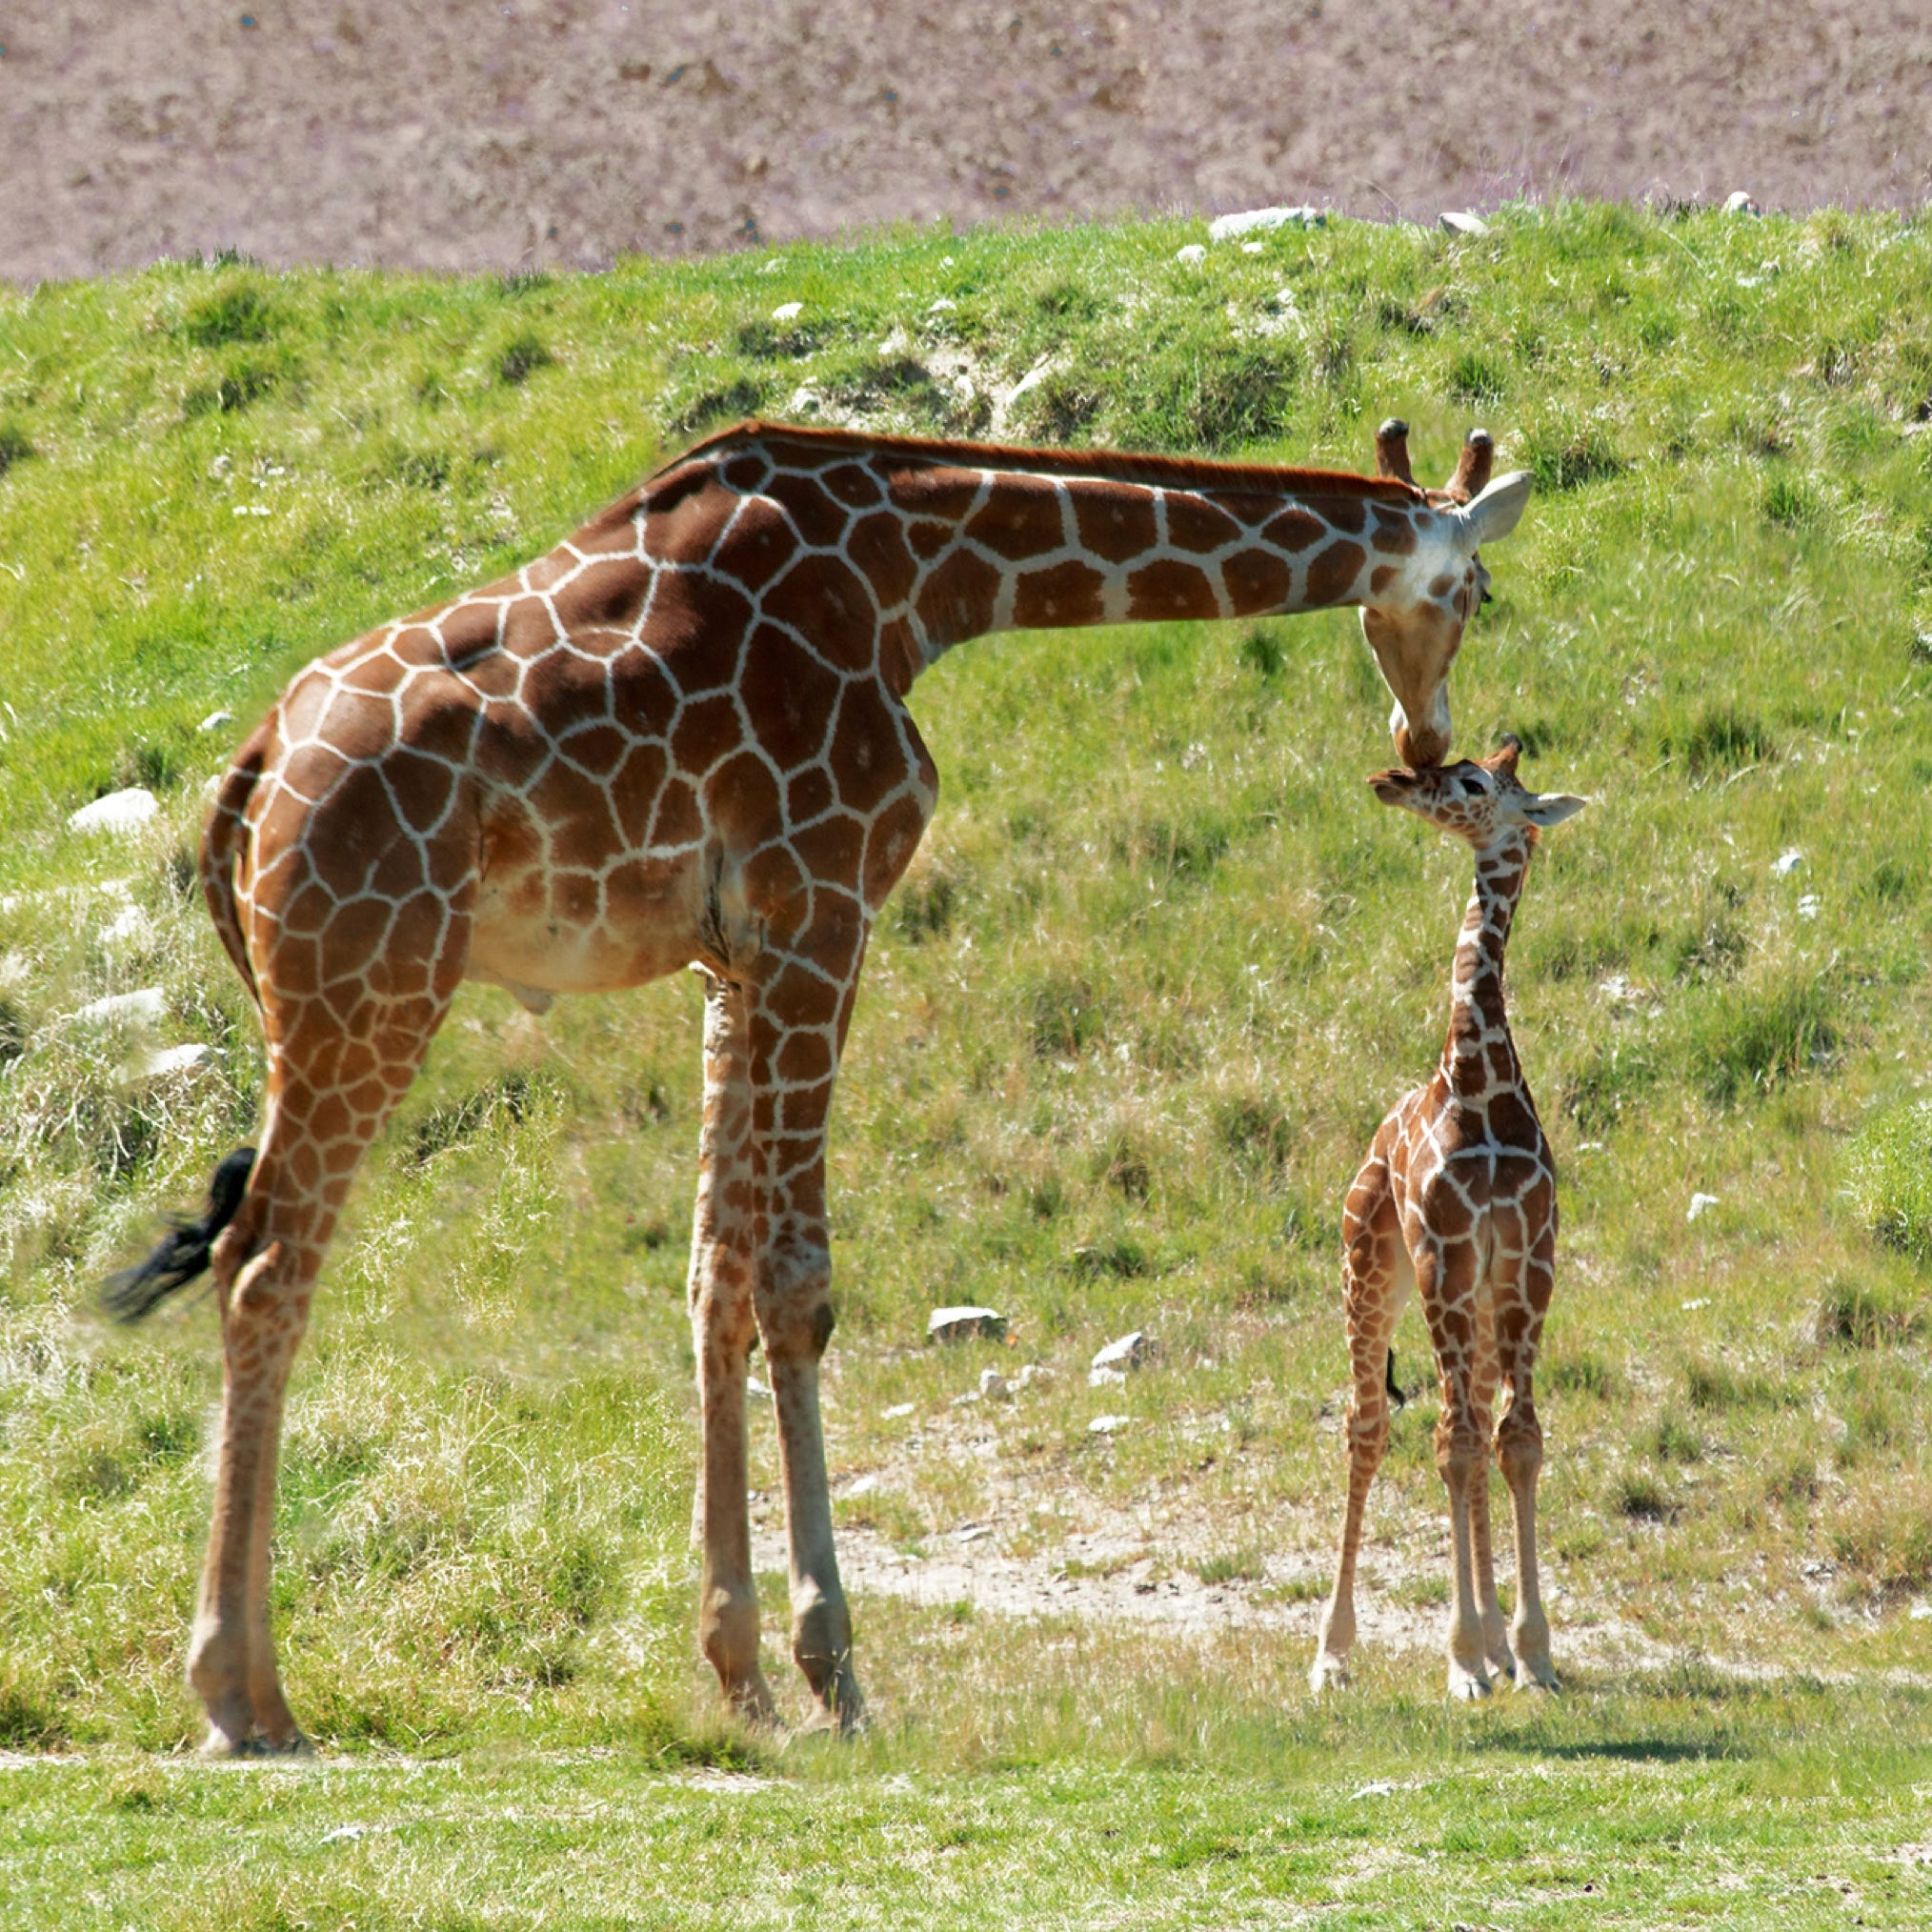 Vicki Lou, who? That's the newest giraffe at The Living Desert, not a Dr. Seuss character